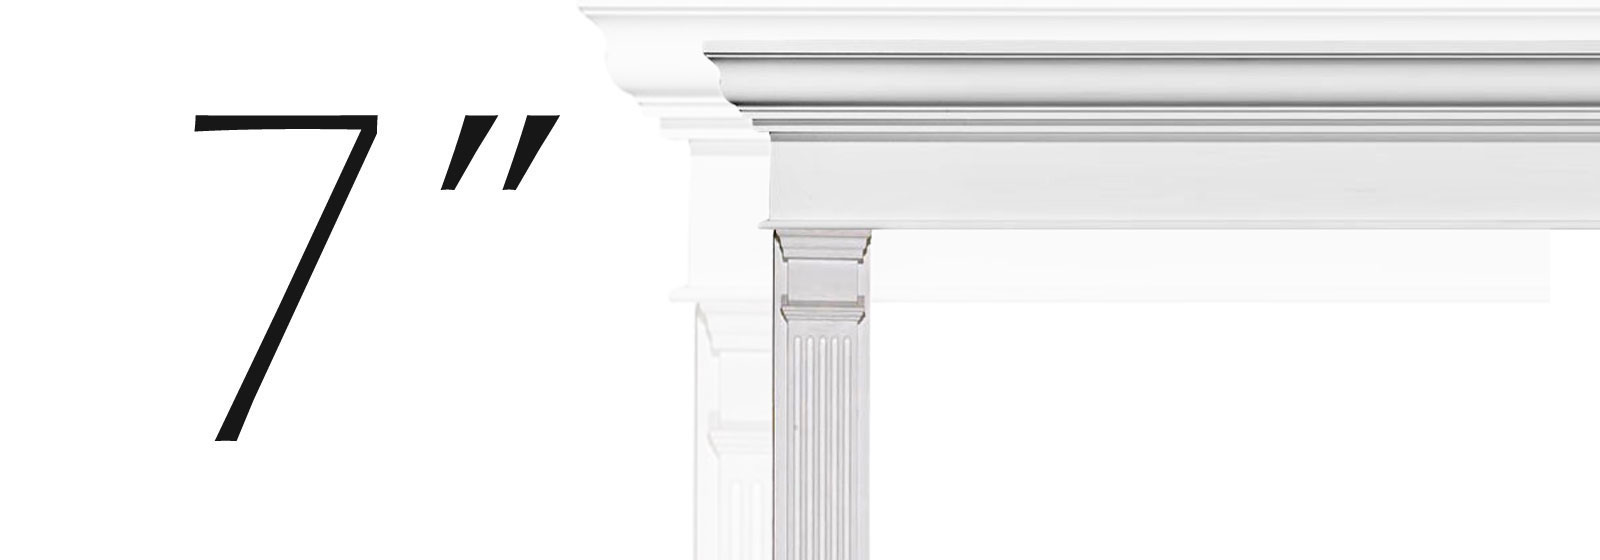 Medium Fypon Fluted Pilasters - Fypon Millwork